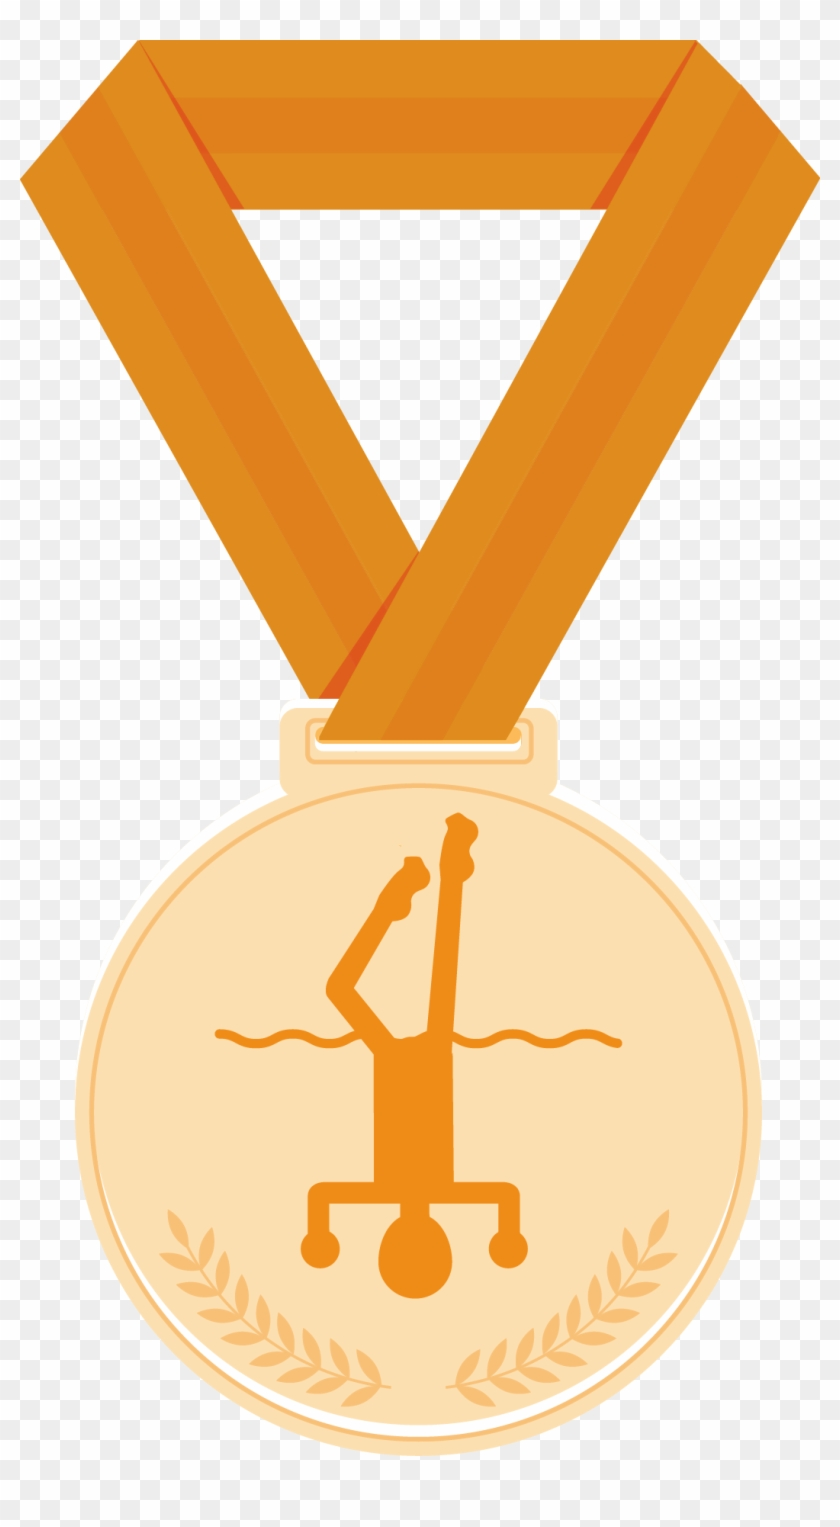 medium resolution of medal clipart olympic swimmer the mechanic